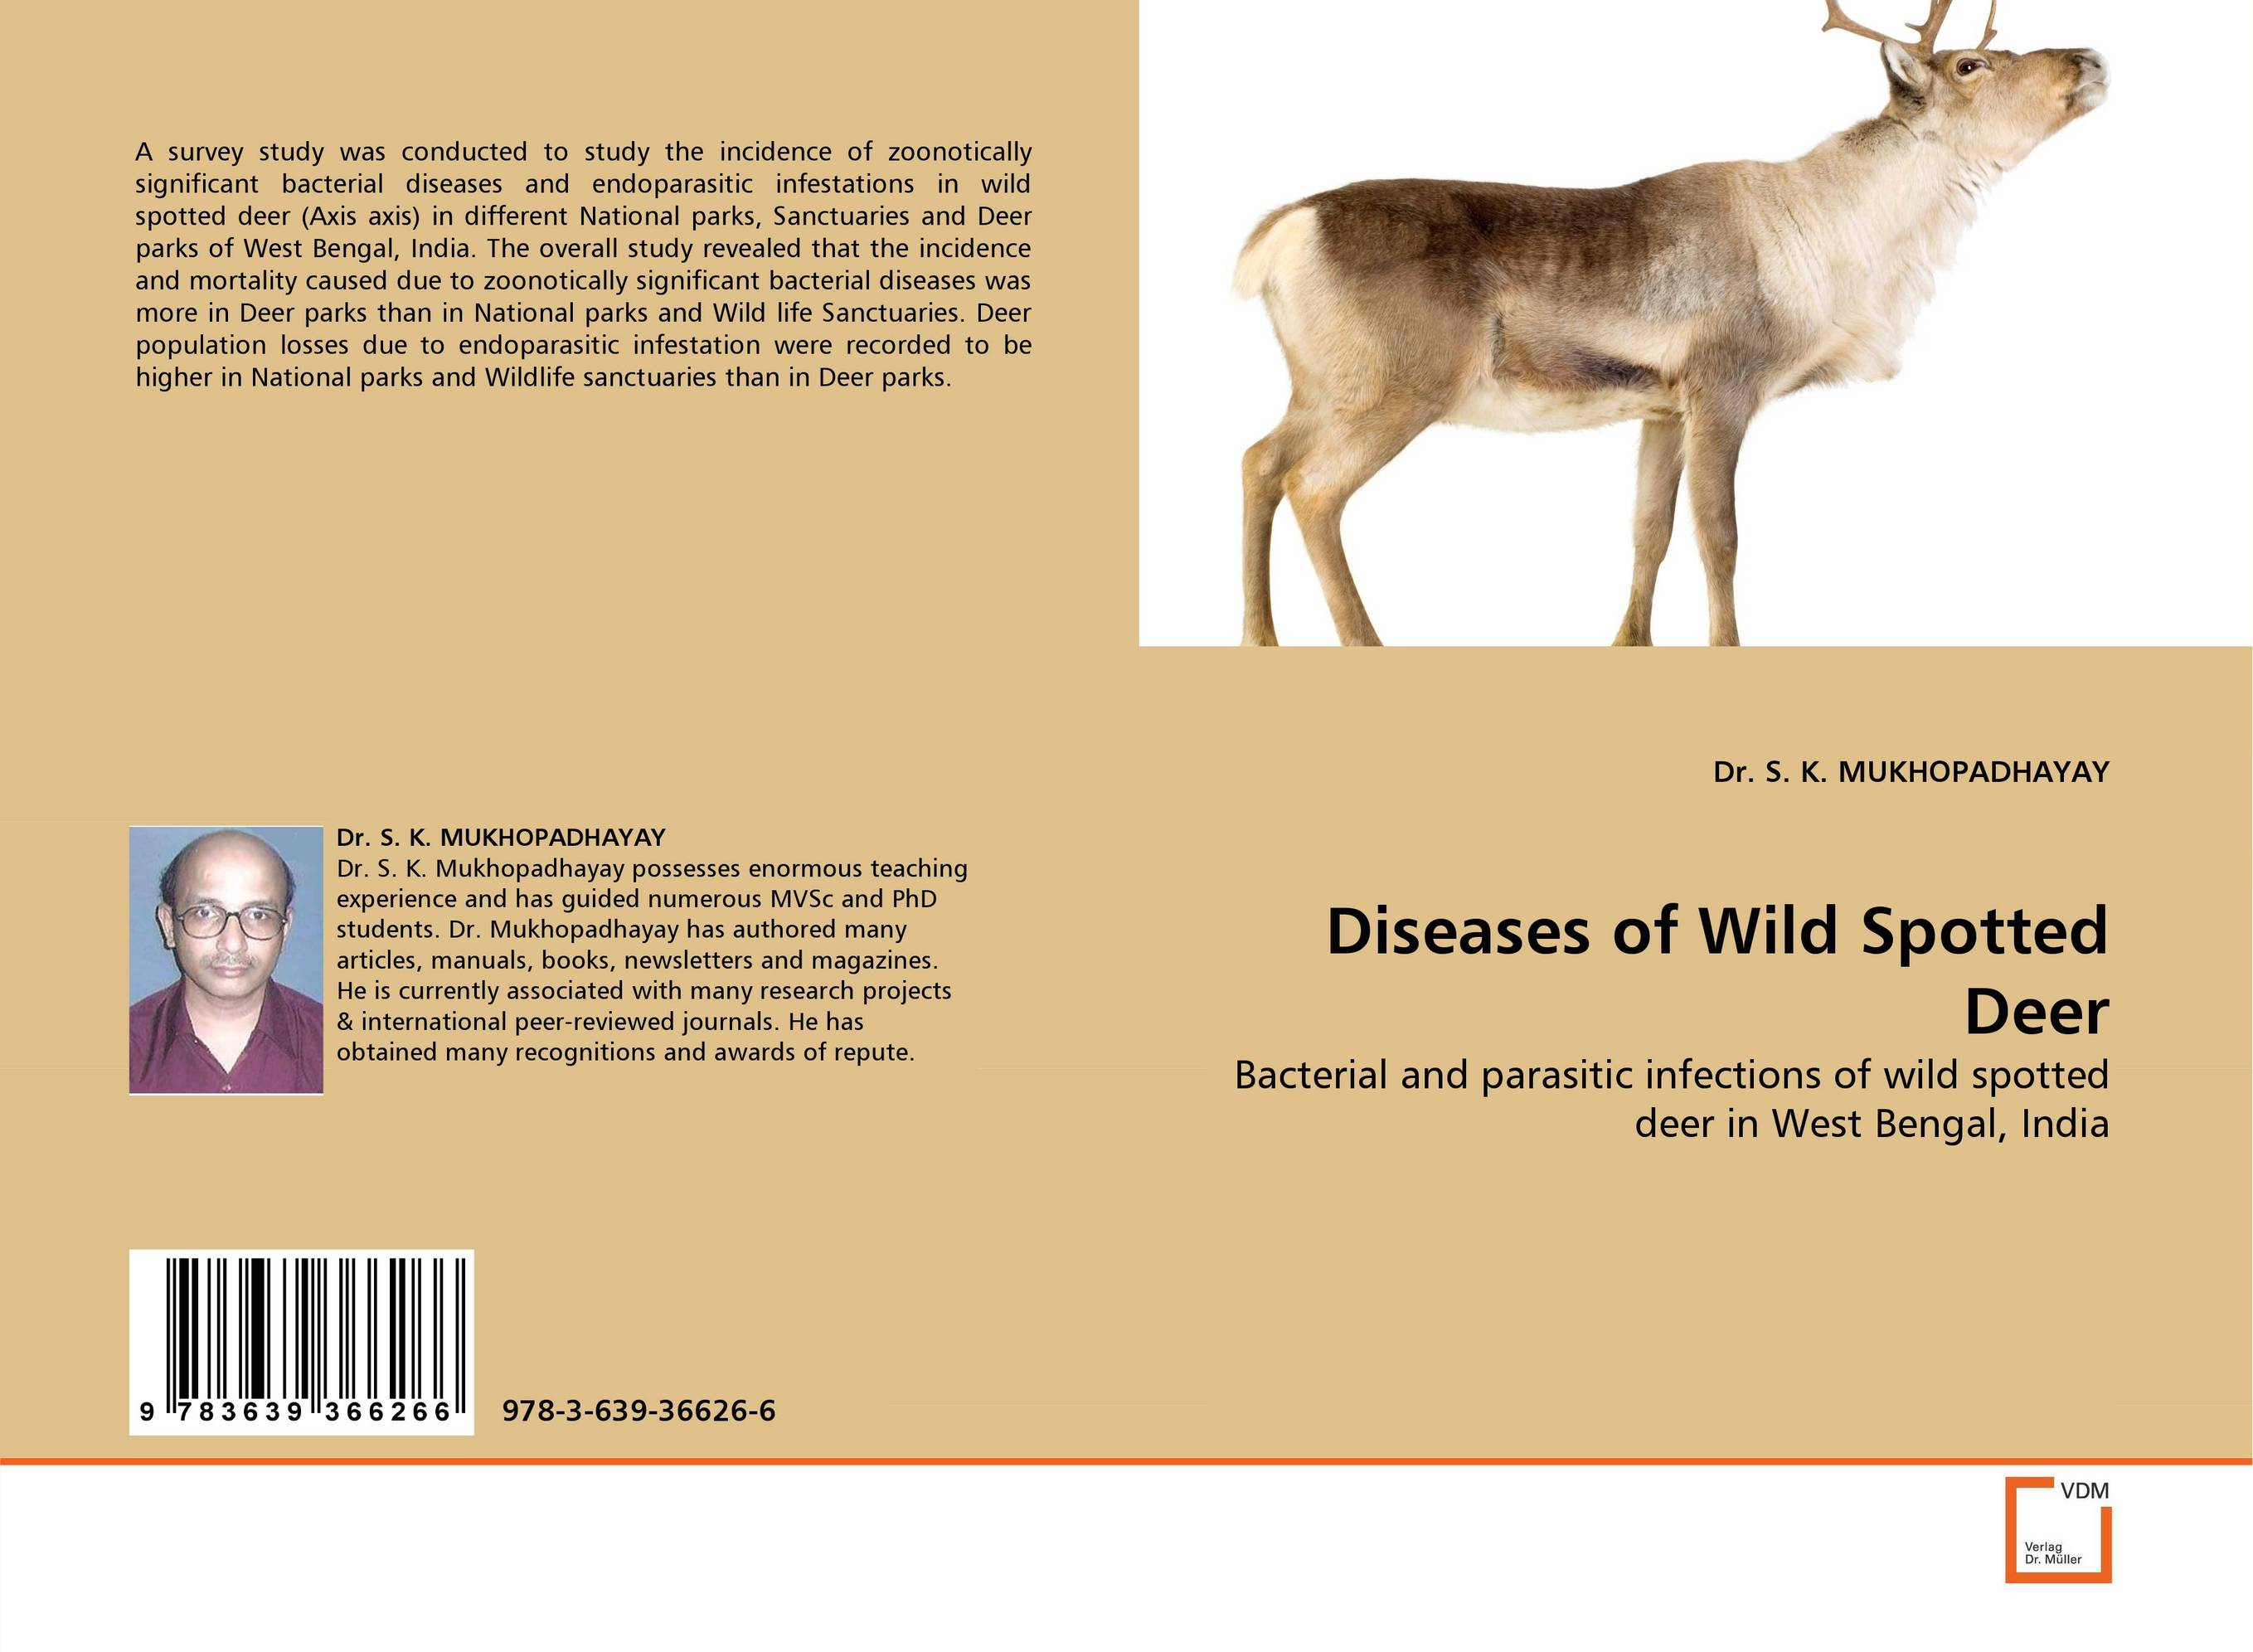 Diseases of Wild Spotted Deer